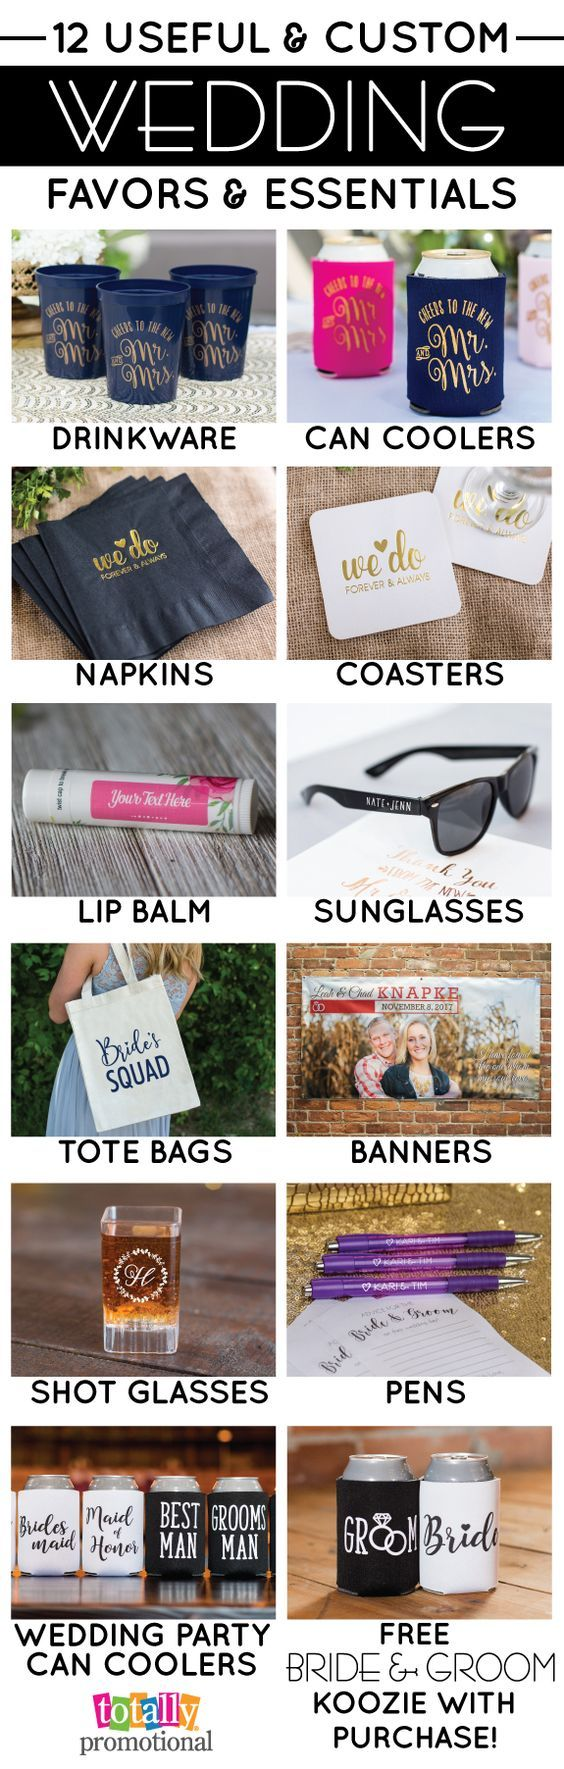 Create an unforgettable wedding with our custom but yet useful wedding favors & essentials! We carry all of the trending wedding colors & styles of can coolers, drinkware, sunglasses, coasters, napkins & more! Receive a FREE bride & groom can cooler with ANY order!